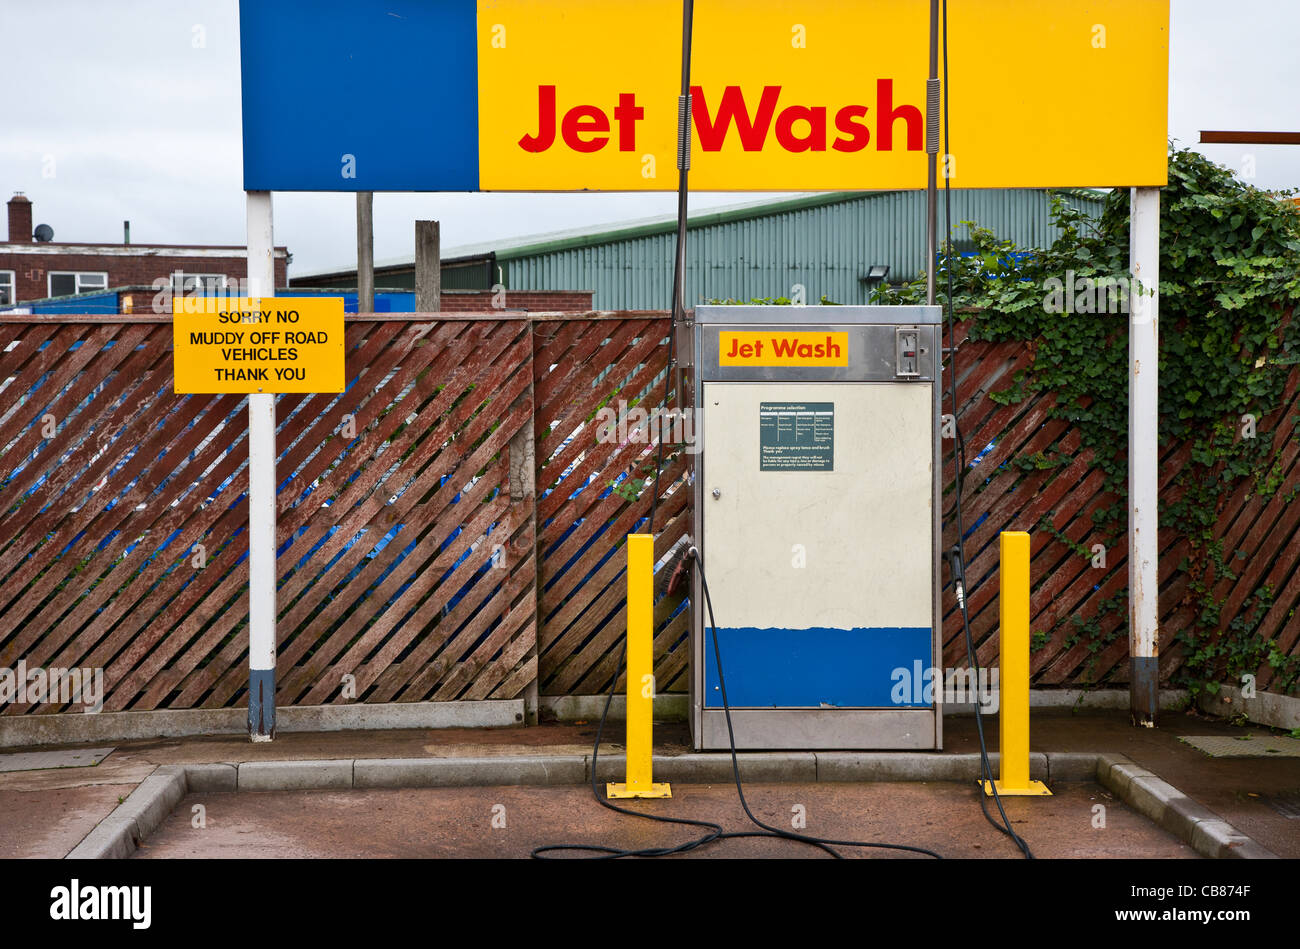 Jet car wash with sign saying no muddy off road vehicles, Devon, England - Stock Image